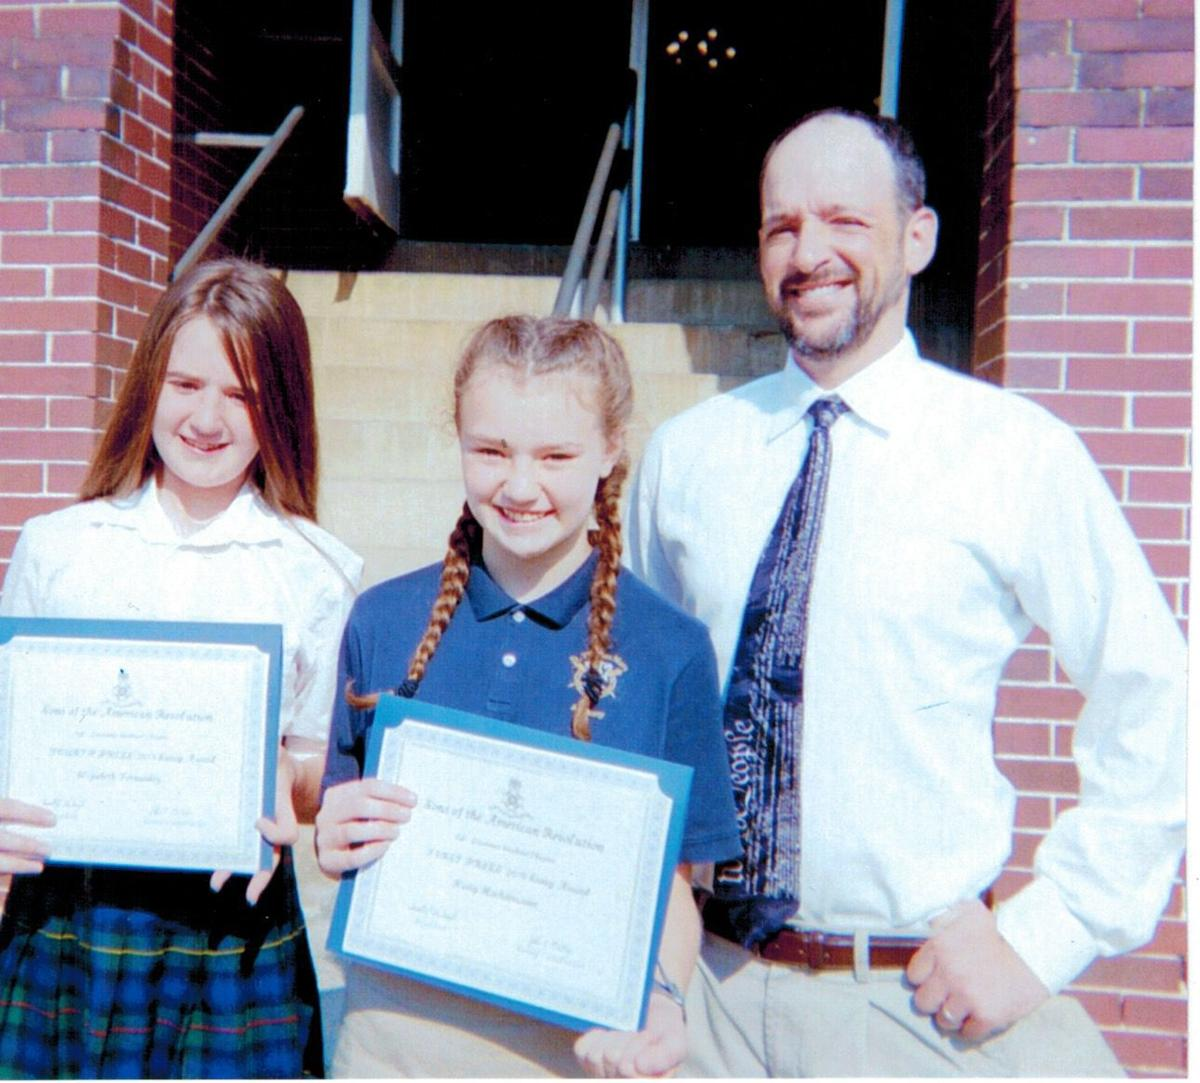 Essay contest winners from St. Thomas More Academy